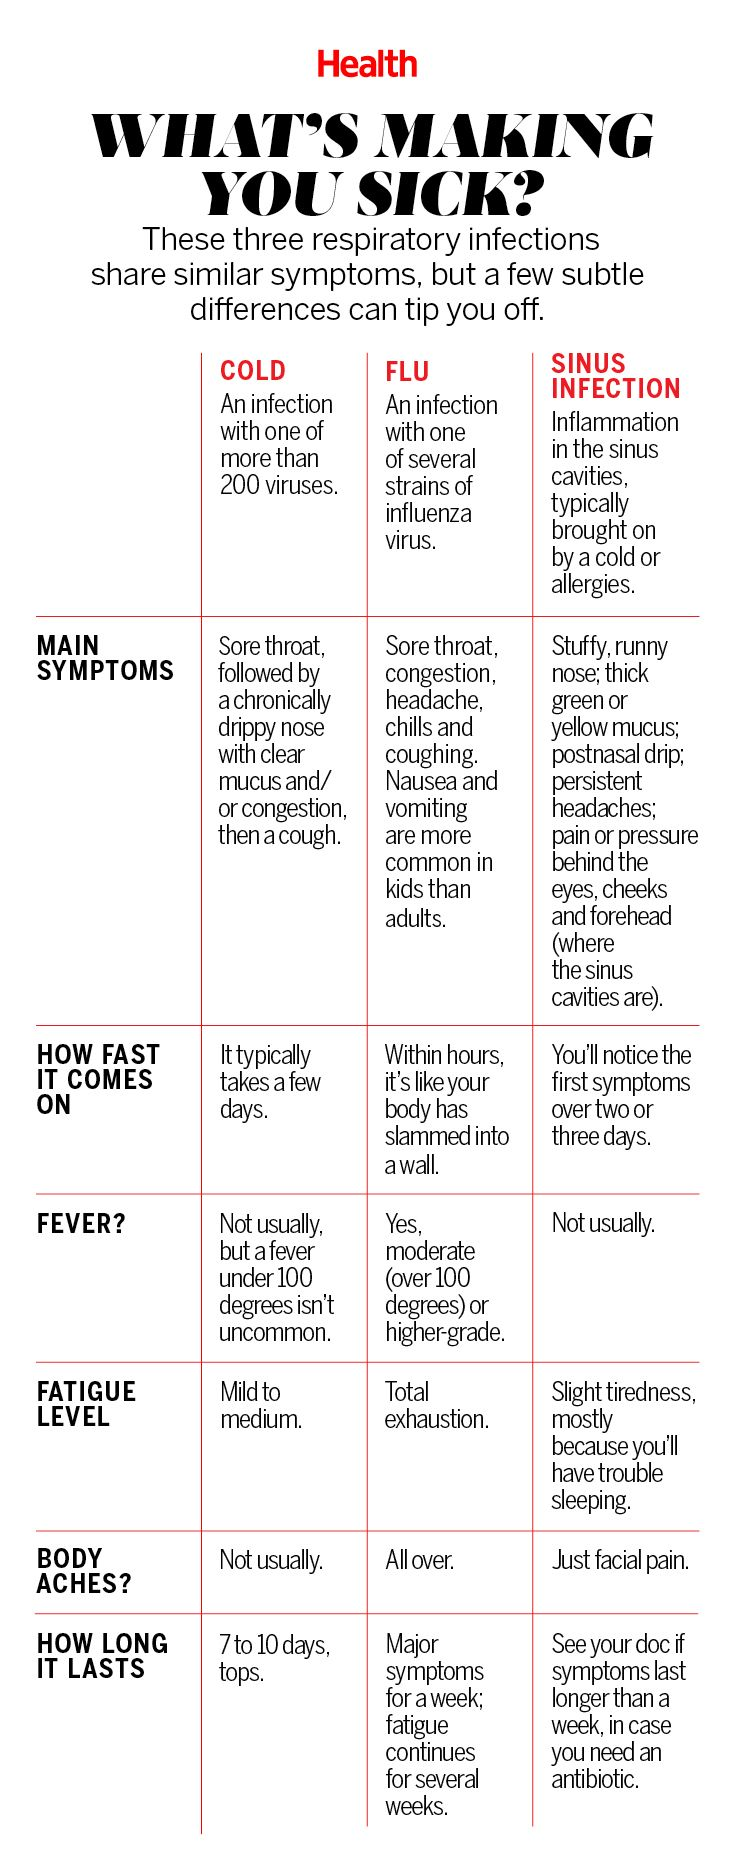 These respiratory infections share similar symptoms, but a few subtle differences can tip you off.